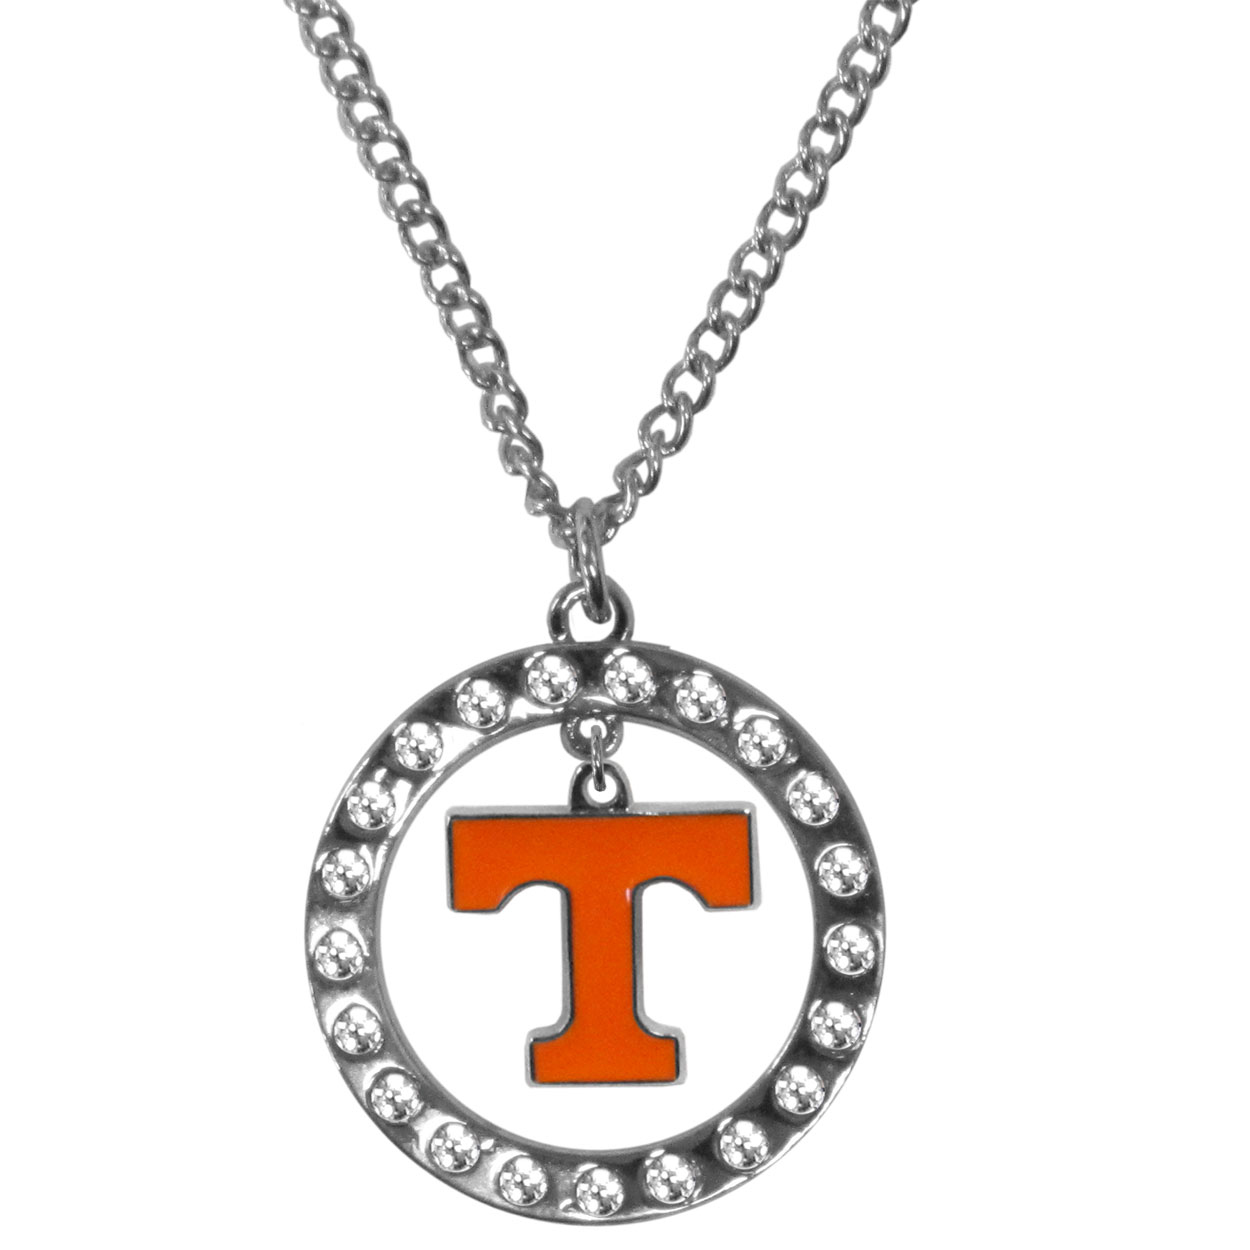 Tennessee Volunteers Rhinestone Hoop Necklaces - Our Tennessee Volunteers rhinestone hoop necklace comes on an 18 inch chain and features a hoop covered in rhinestones with a high polish chrome finish and a cast and enameled team charm dangling in the center.